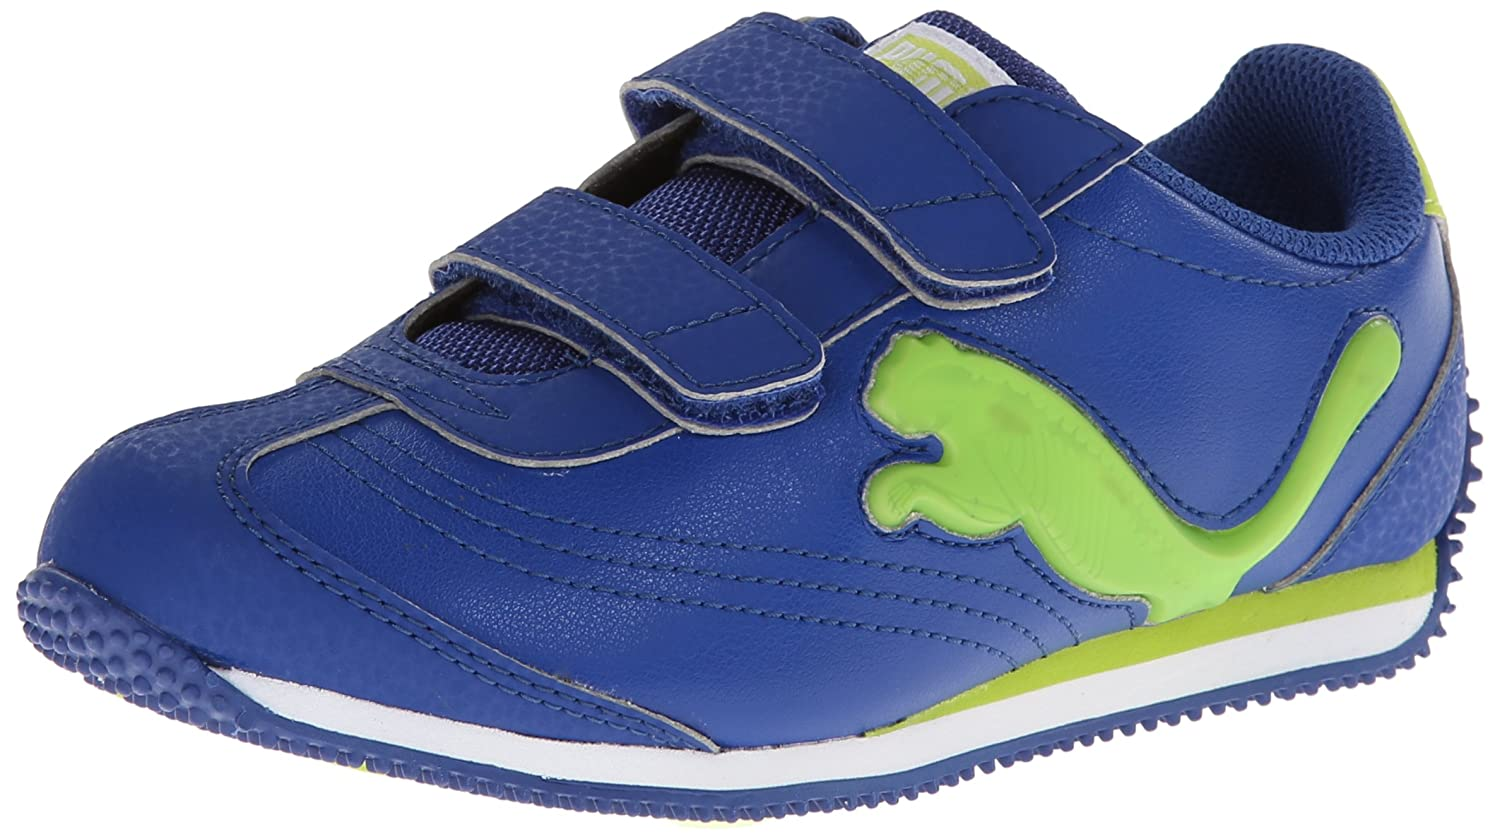 56279c2f196c Puma Speeder Illuminescent V Light up Sneaker (Toddler Little Kid Big Kid)   Amazon.co.uk  Shoes   Bags